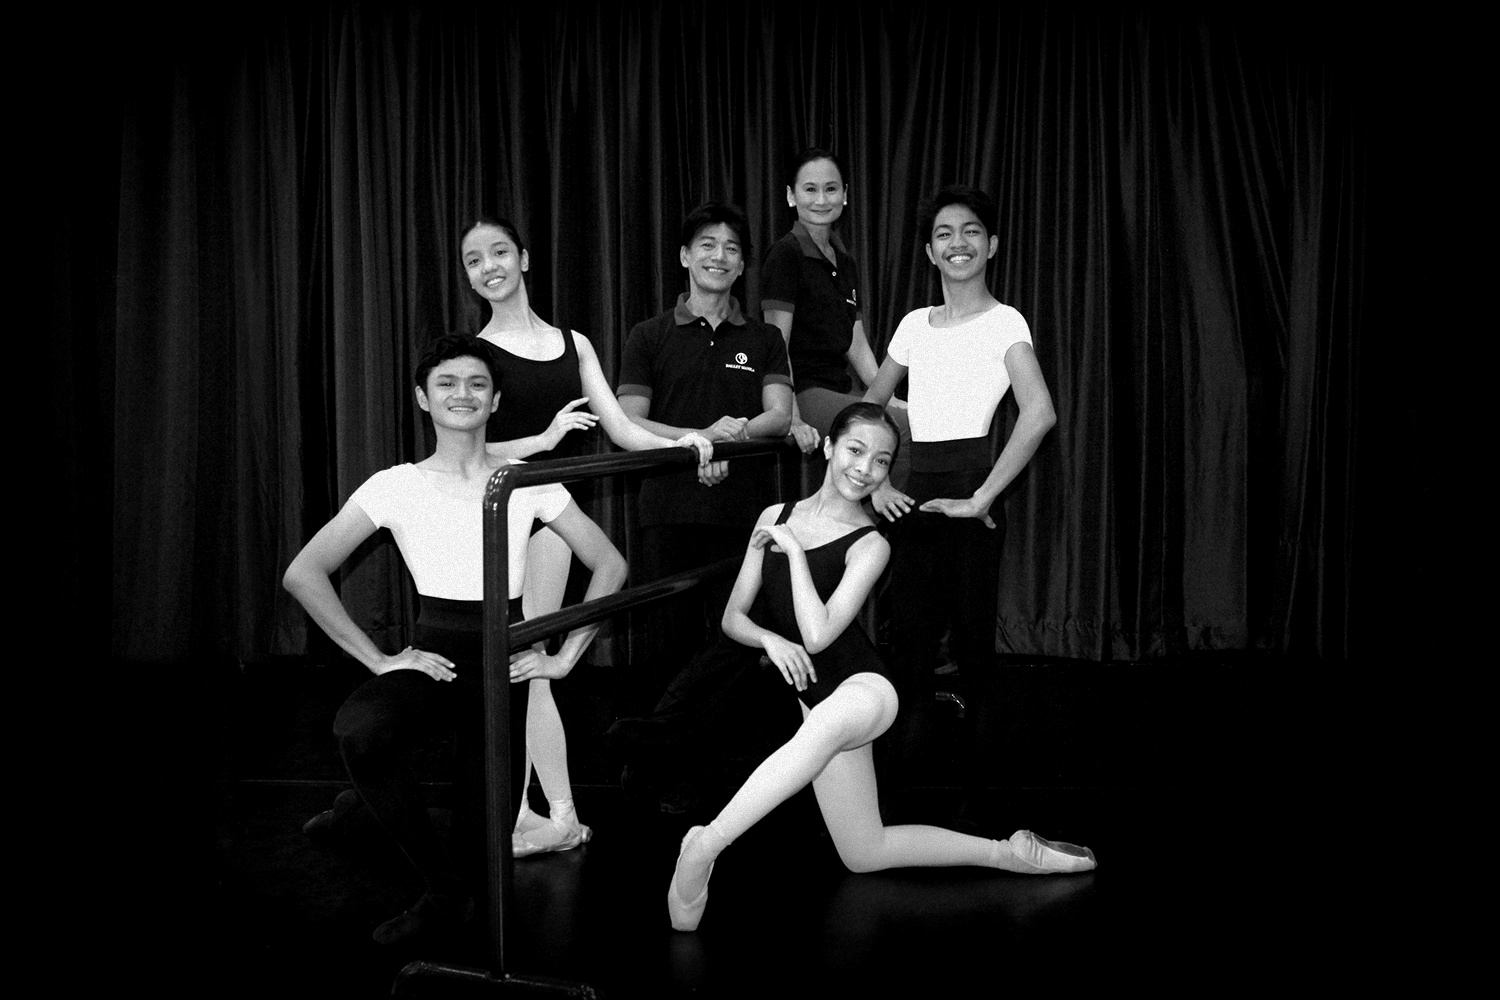 Joshua Enciso, Marinette Franco, Nicole Barroso and Alvin Dictado have been chosen to represent Ballet Manila in the 2016 Beijing Dance Performance Series for Dance Schools. Their mentors, Lisa Macuja-Elizalde and Osias Barroso, agree these kids embody talent, potential and good work ethic. Photo by Jimmy Villanueva